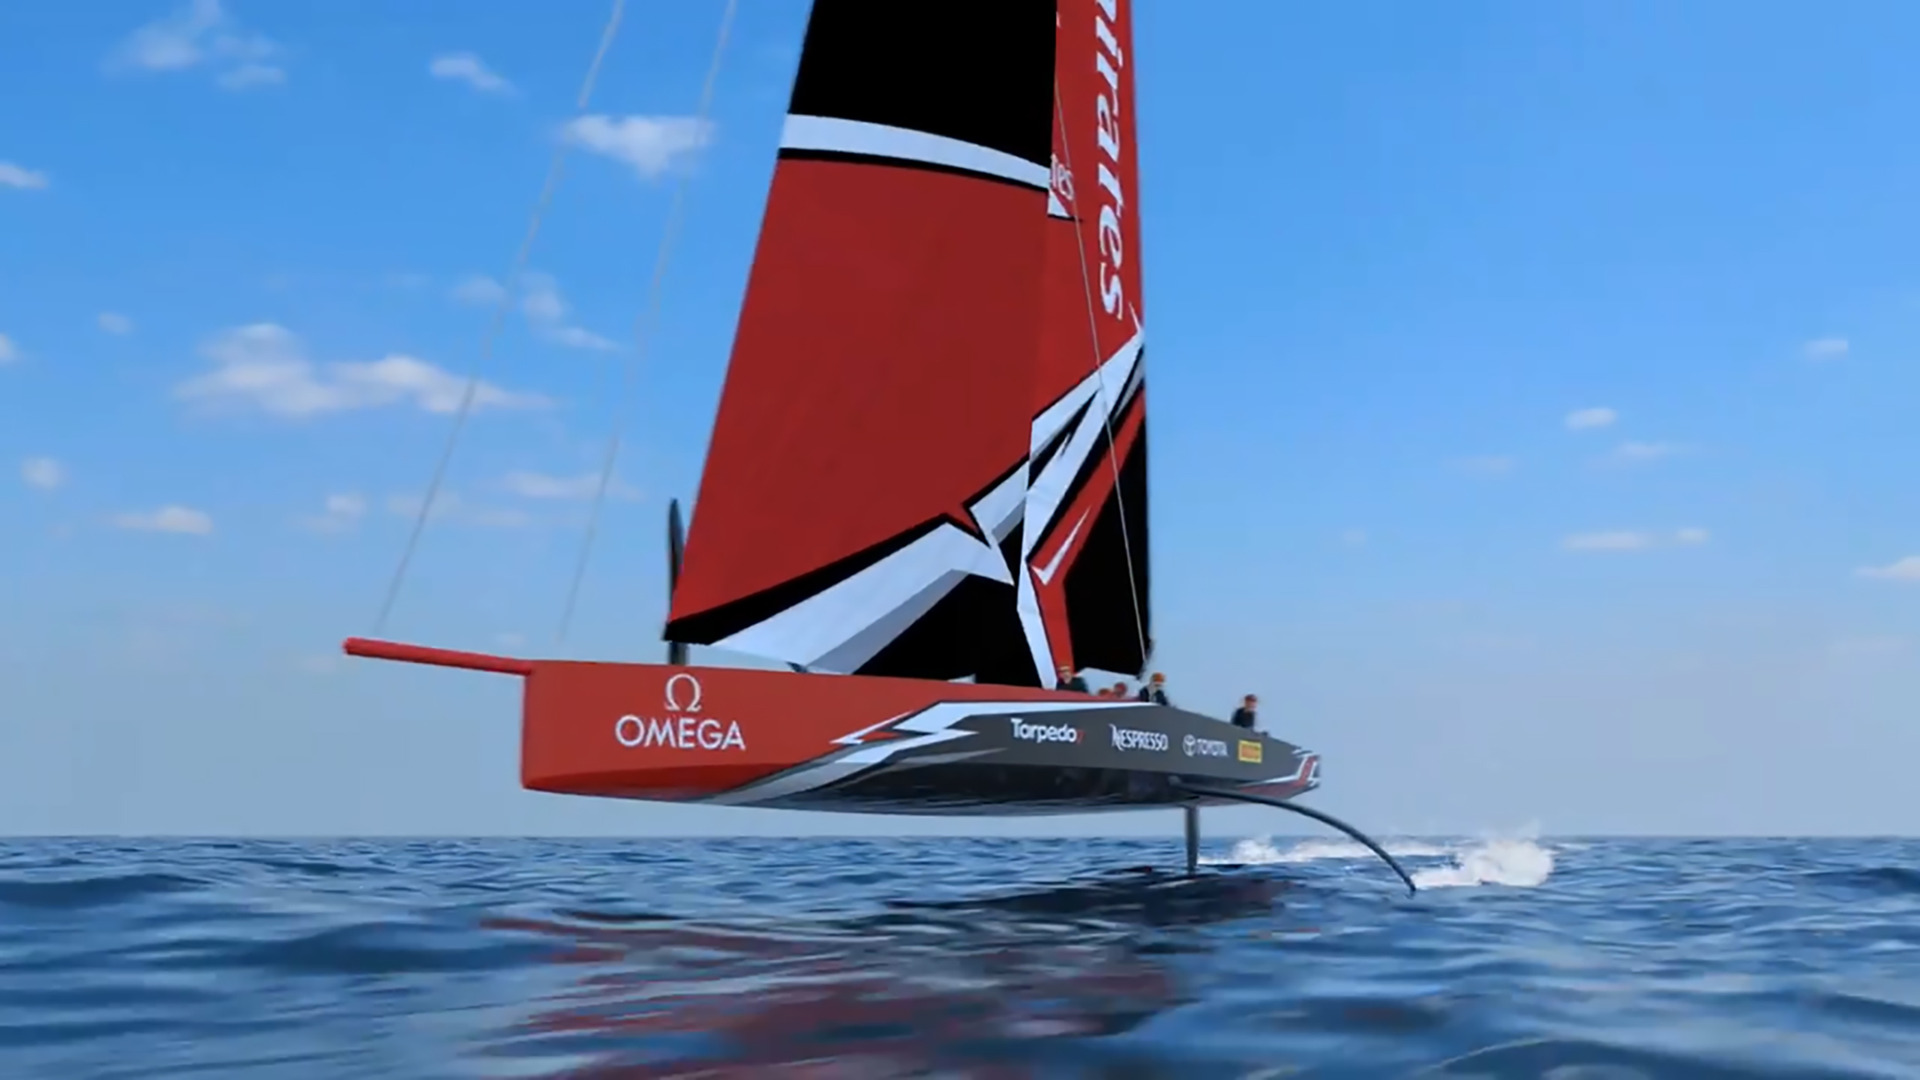 Sailing: 'It's going to be dangerous' - A sneak preview into Team New Zealand's secret America's Cup weapon